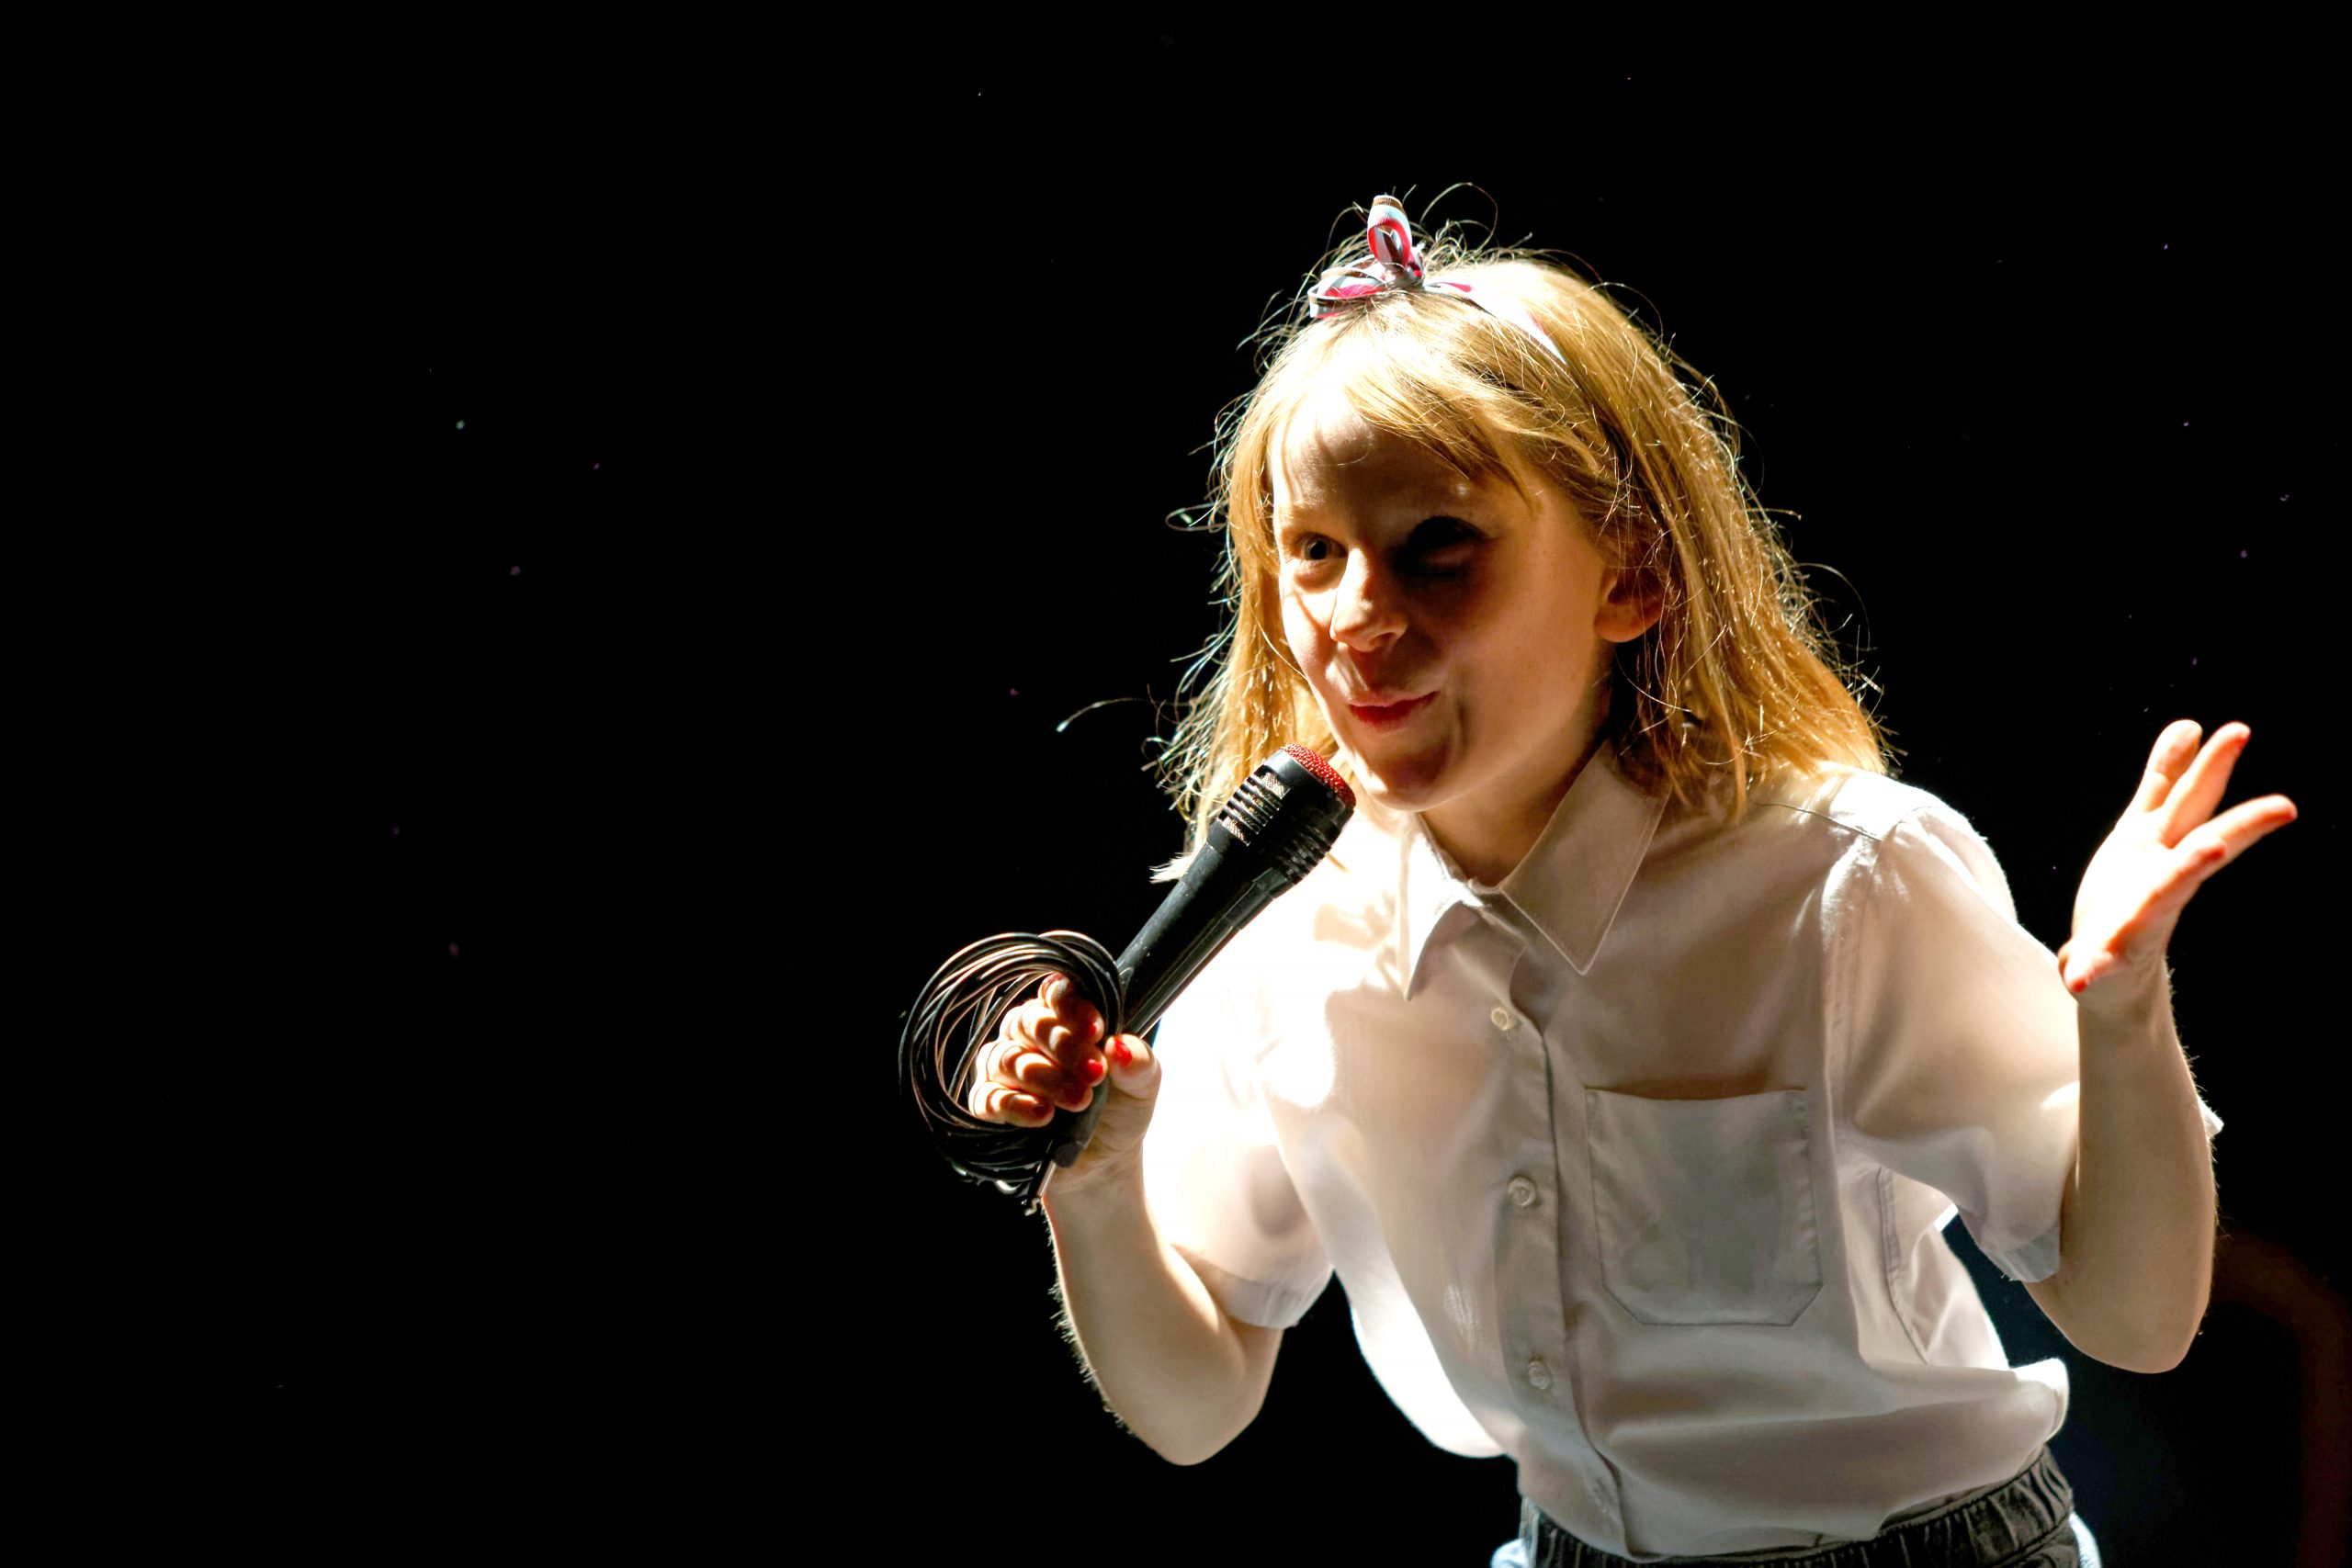 Young girl talking into a microphone